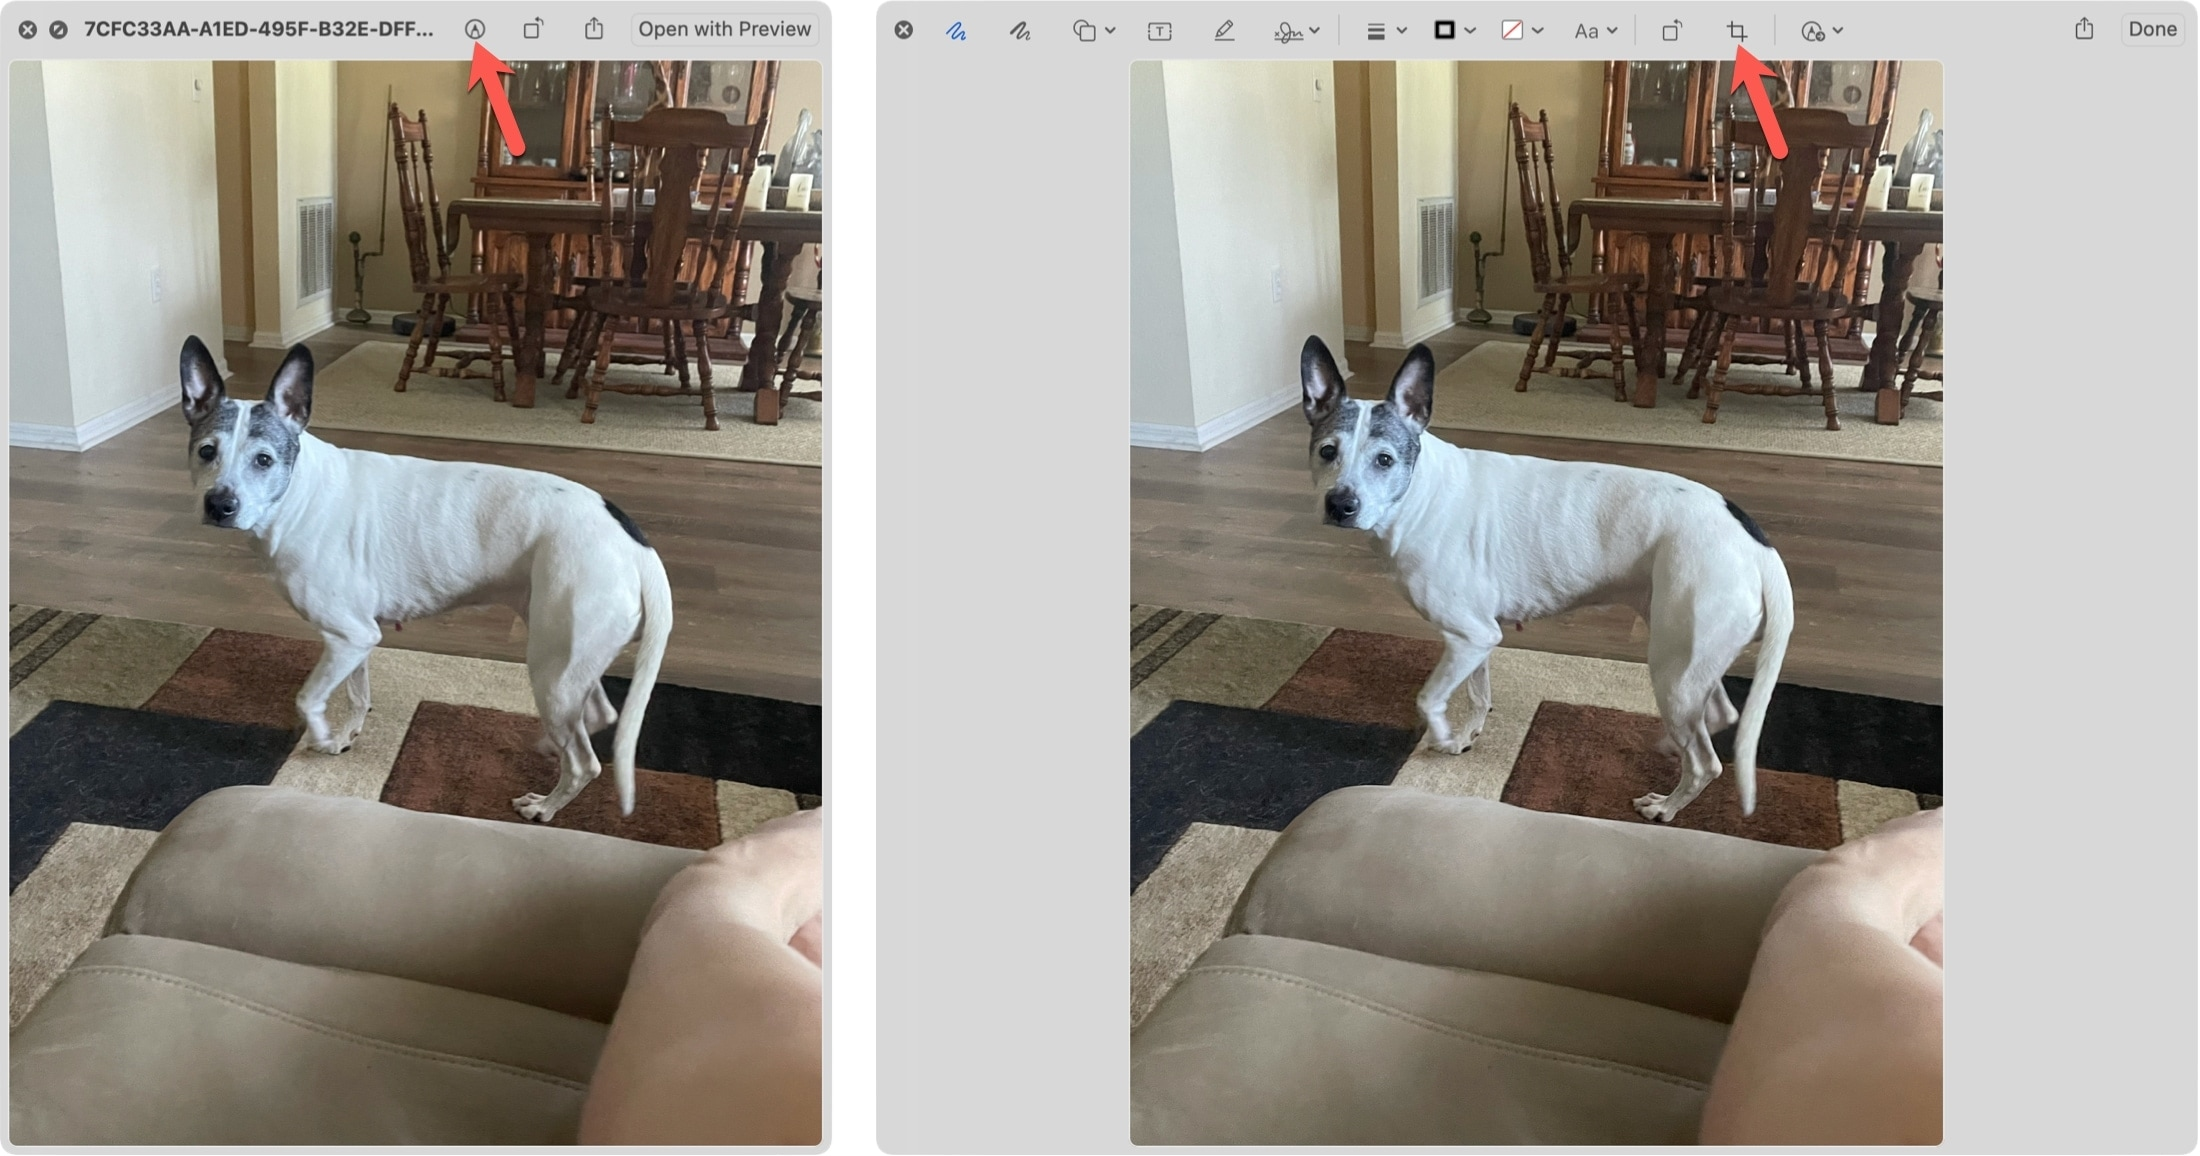 Markup an Image with Quick Look on Mac